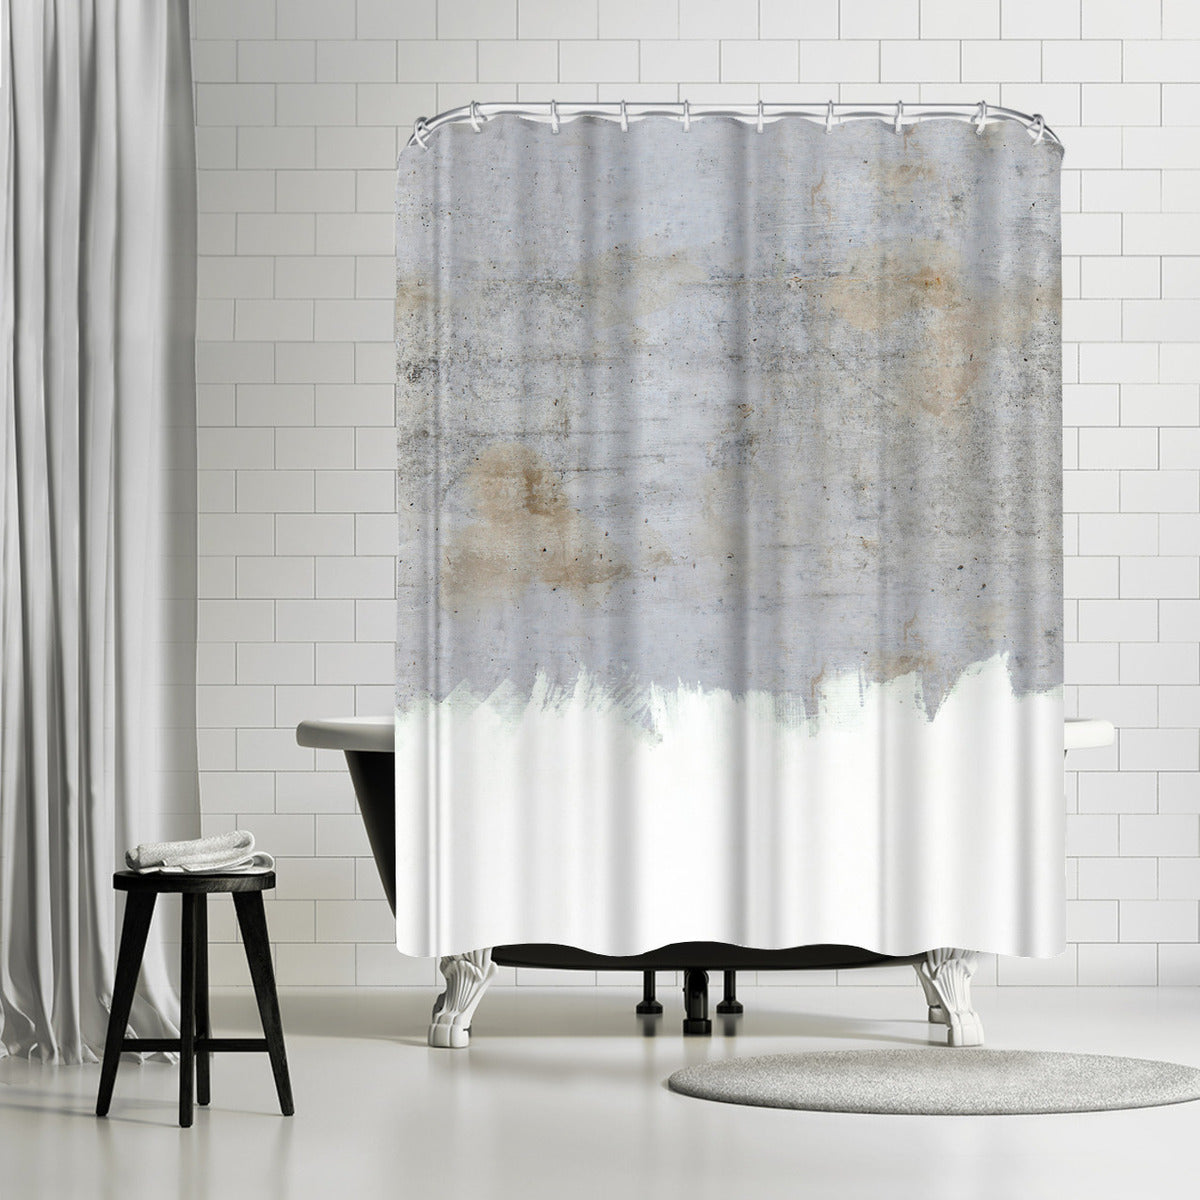 Painting On Raw Concrete by Emanuela Carratoni Shower Curtain - Shower Curtain - Americanflat